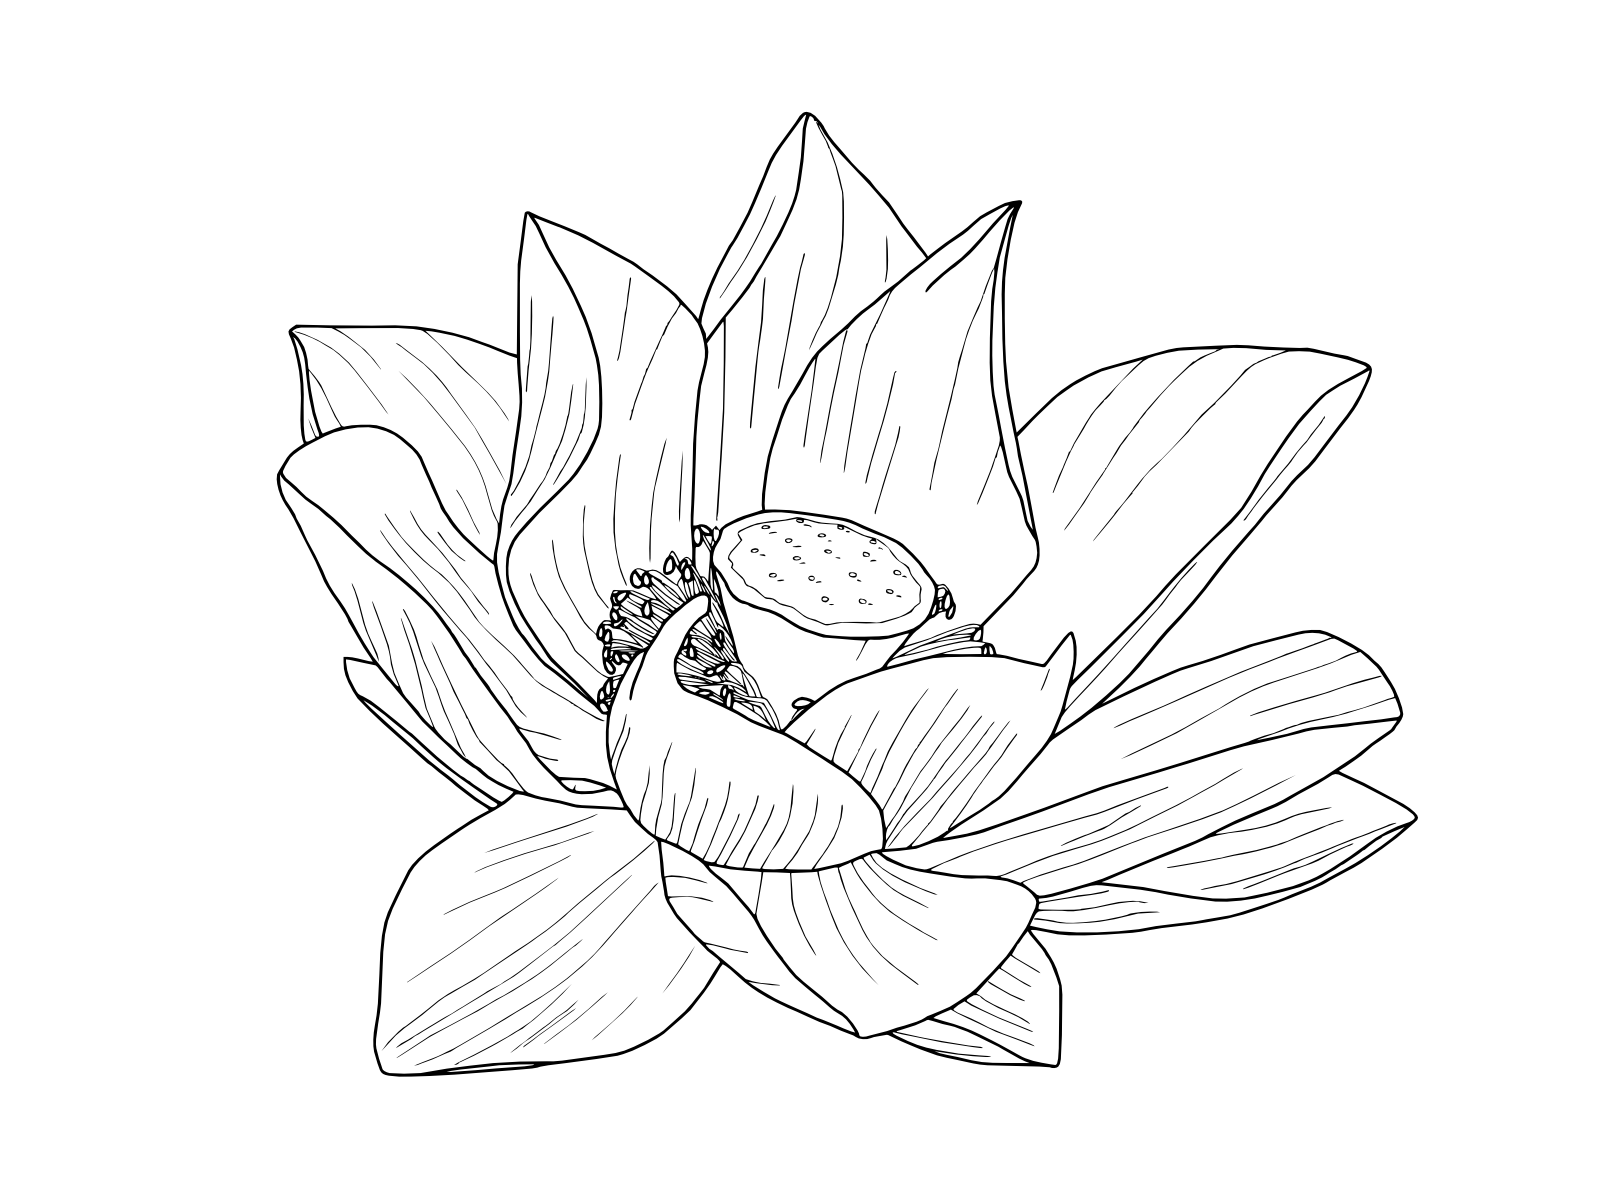 Transparent Drawing At Getdrawings Free For Personal Use